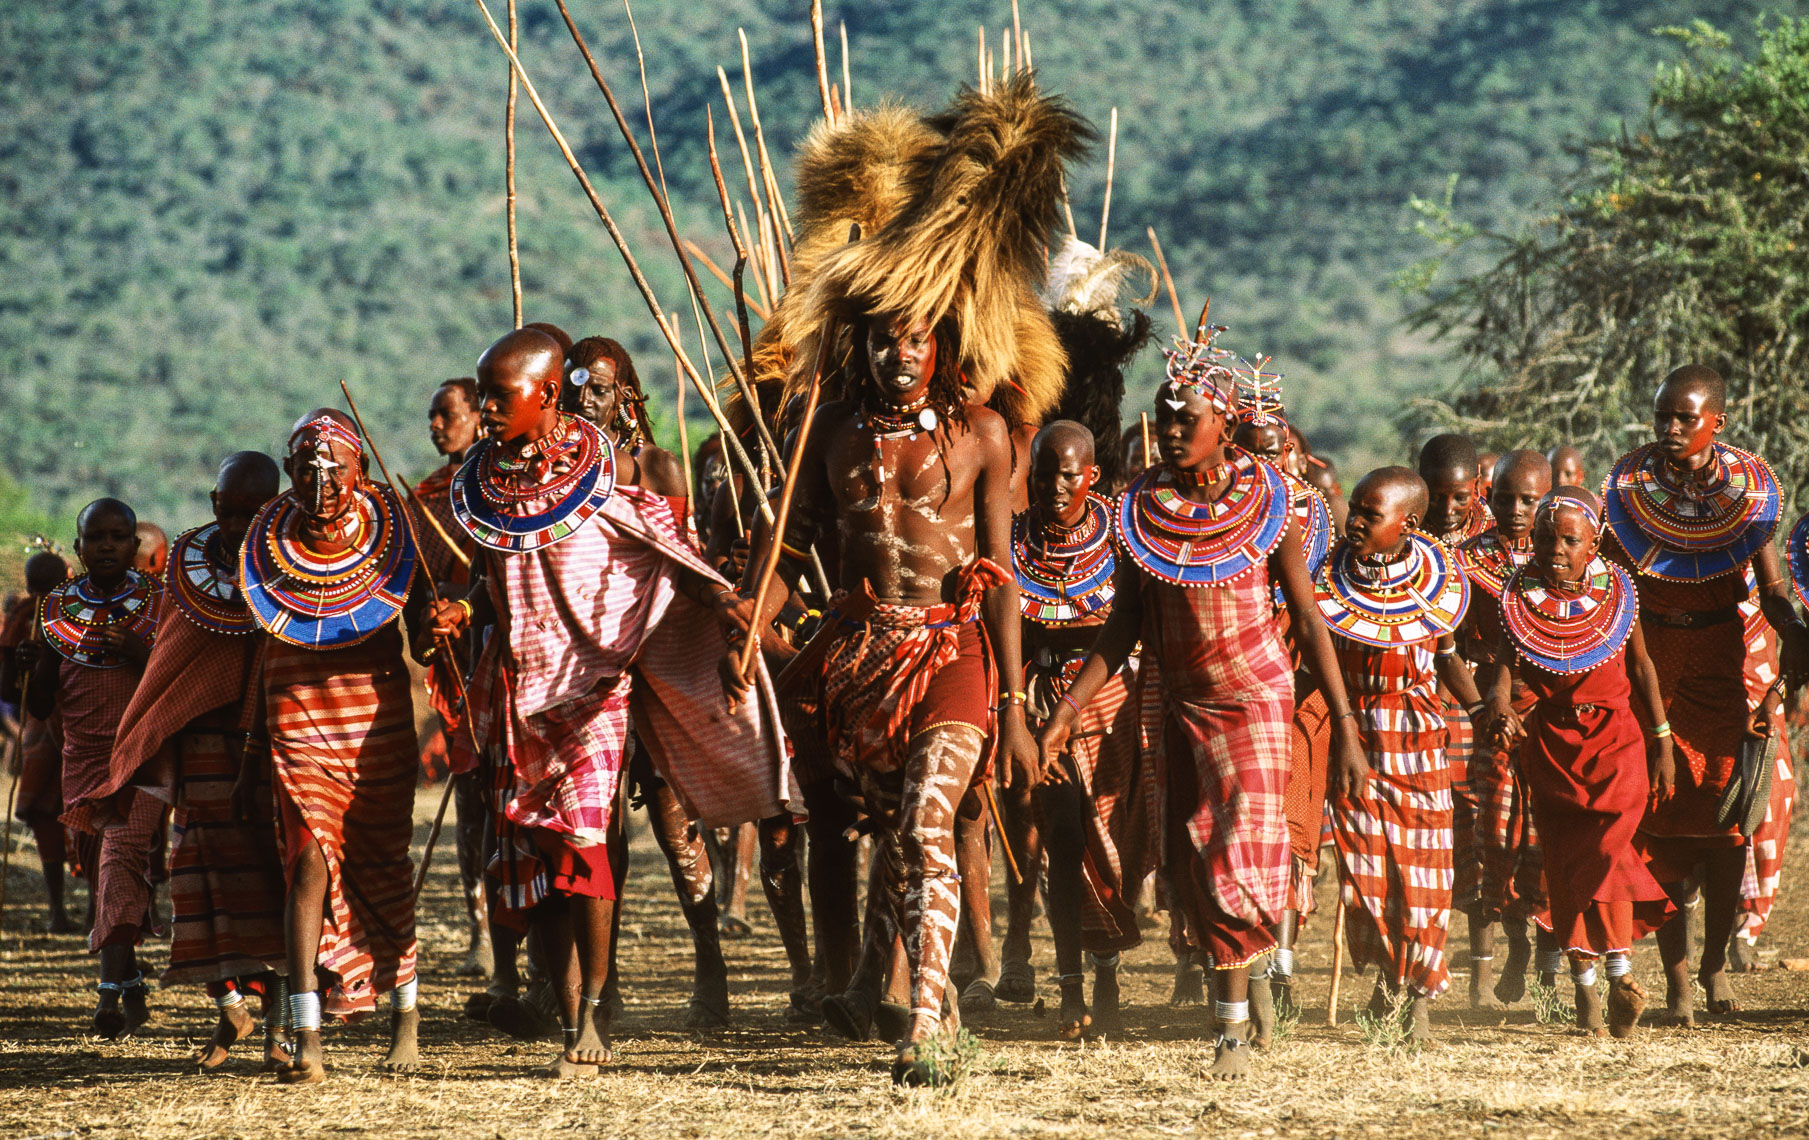 Maasai Warriors Arriving at Eunoto Ceremony